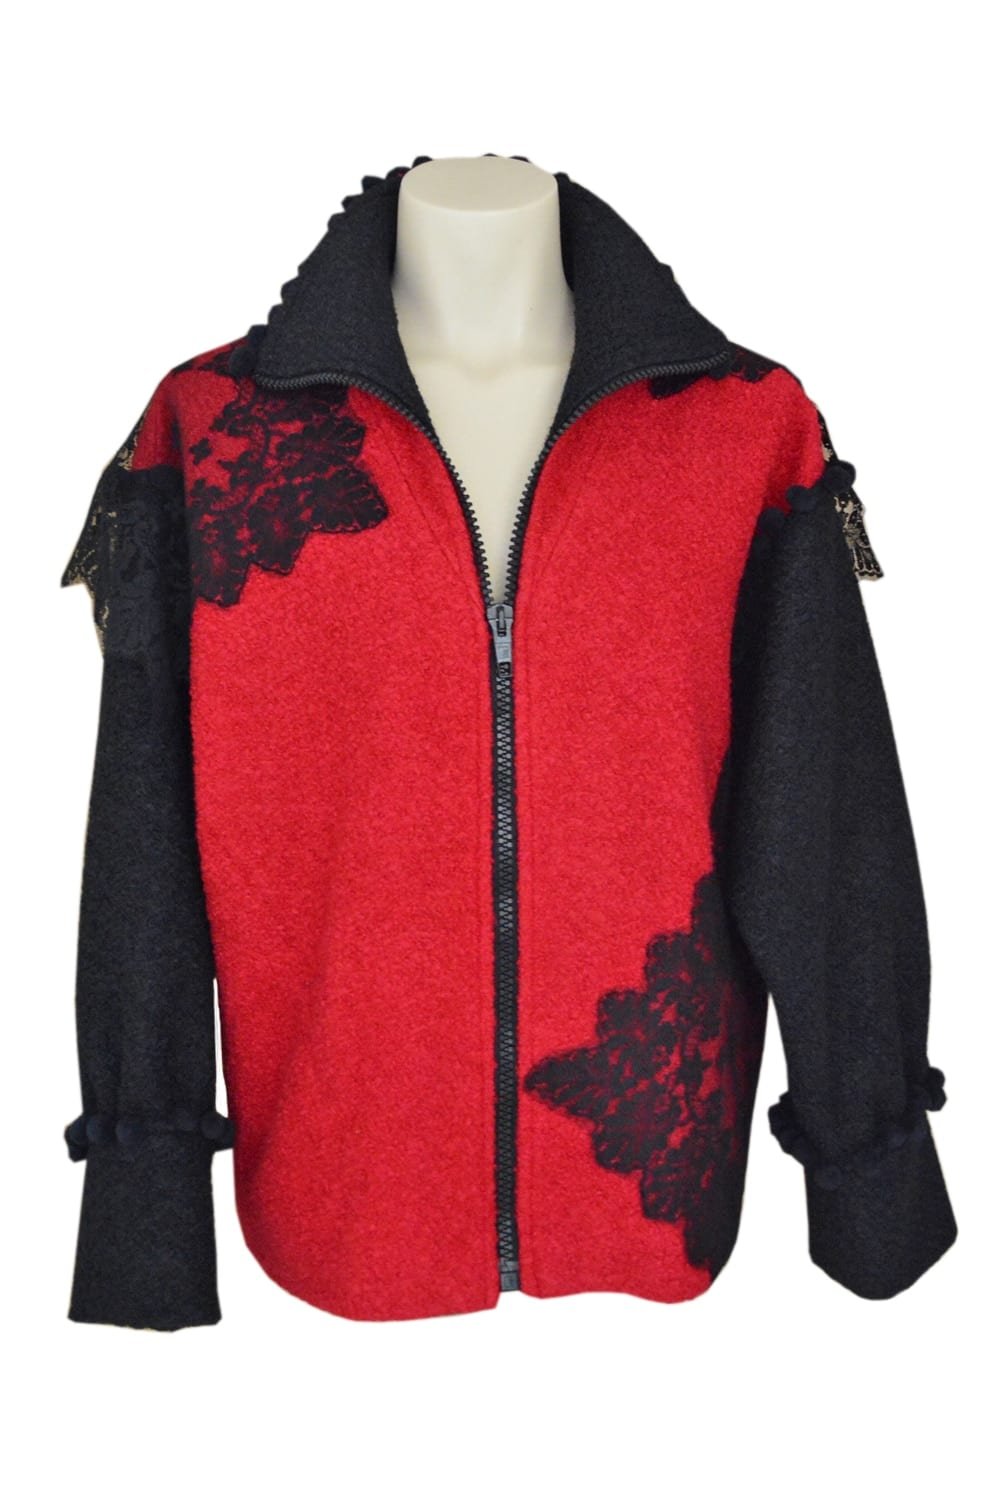 Two-tone red and black boiled wool jacket with zipper on the front and embellished with square chantilly lace patterns. Collar and handles underlined with black pompoms.